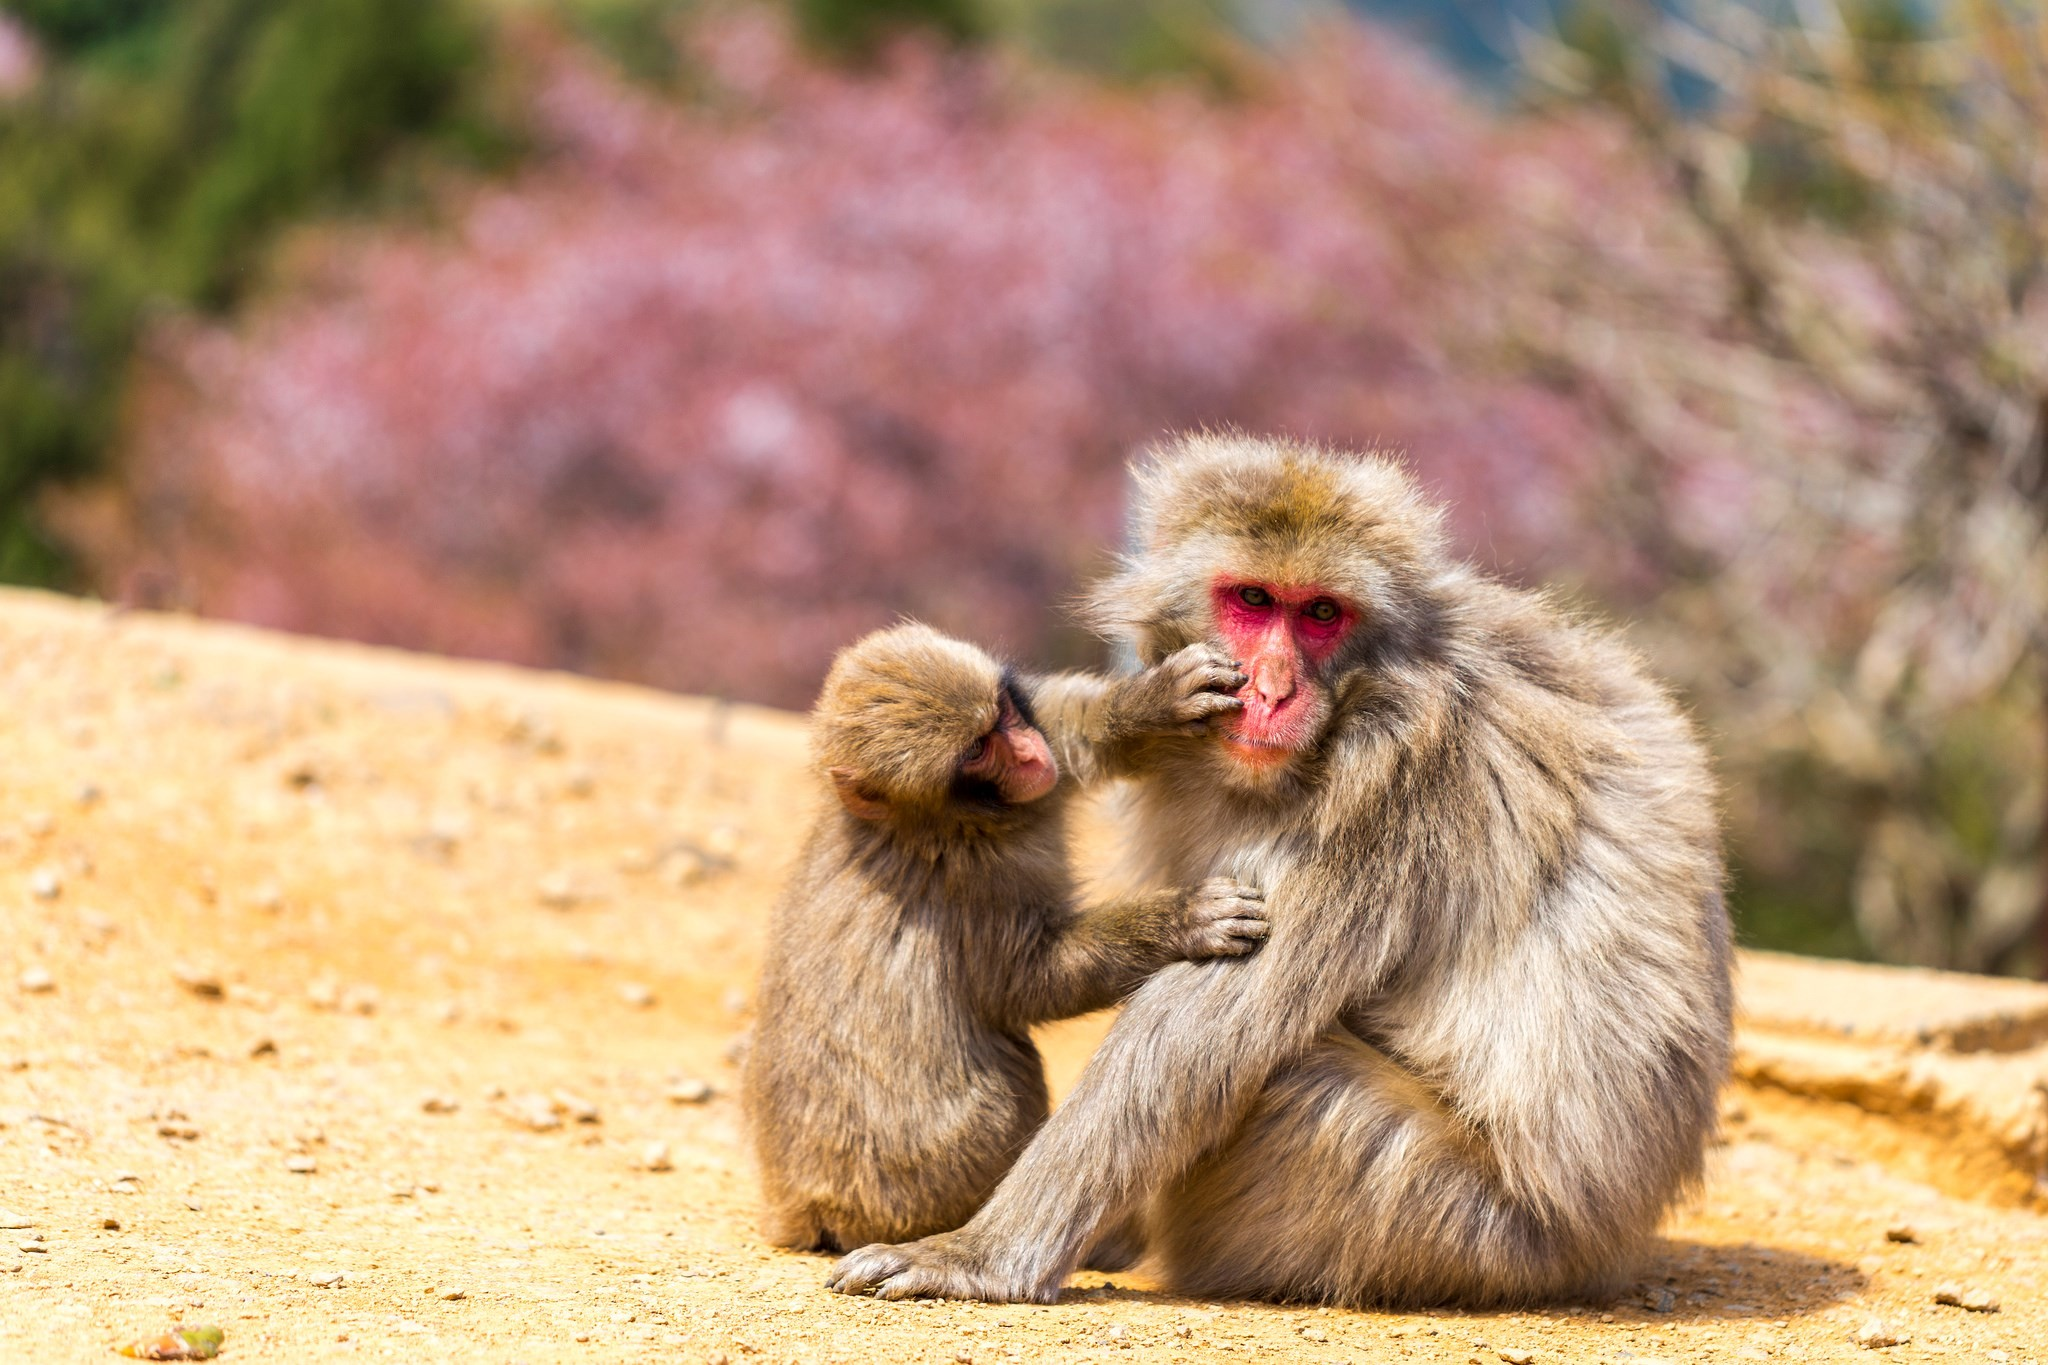 free wallpaper and screensavers for japanese macaque, Windsor Archibald  2017-03-01